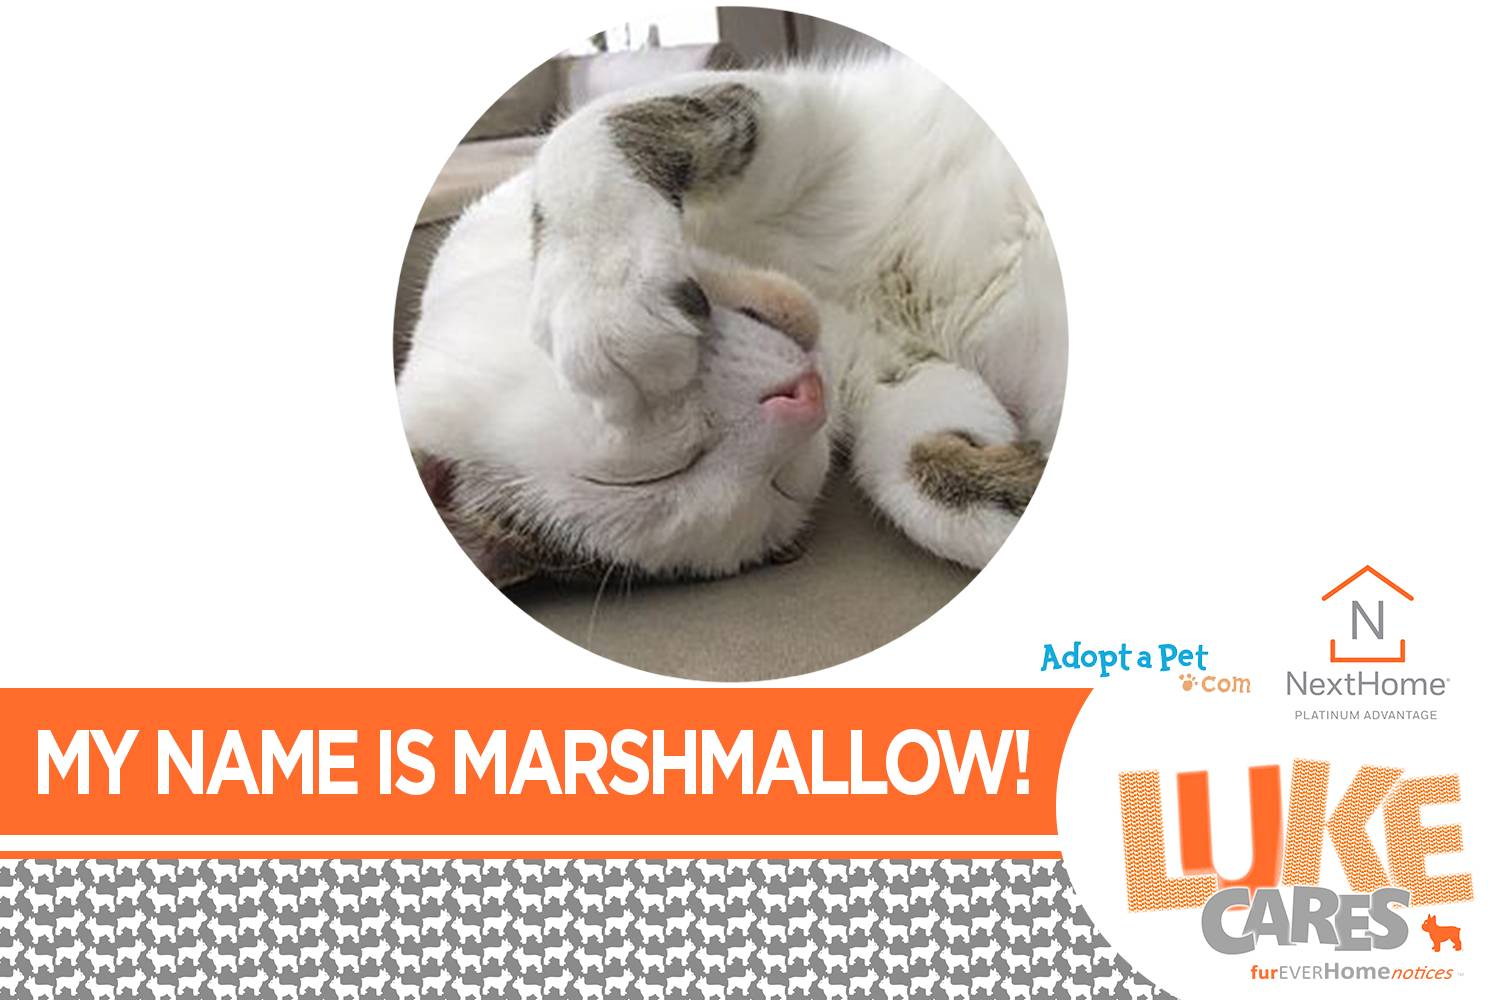 LUKE CARES - furEVERHomeNOTICES  Hi!  My name is Marshmallow! See me here:  http://bit.ly/2J9f5MW  Discover Luke's other friends in need of a furEVER home in the Carolinas!    #lukecares #fureverhomenotices #fureverhomecharities #platinumadvantagerealty #nexthomeplatinumadvantage #adoptapet